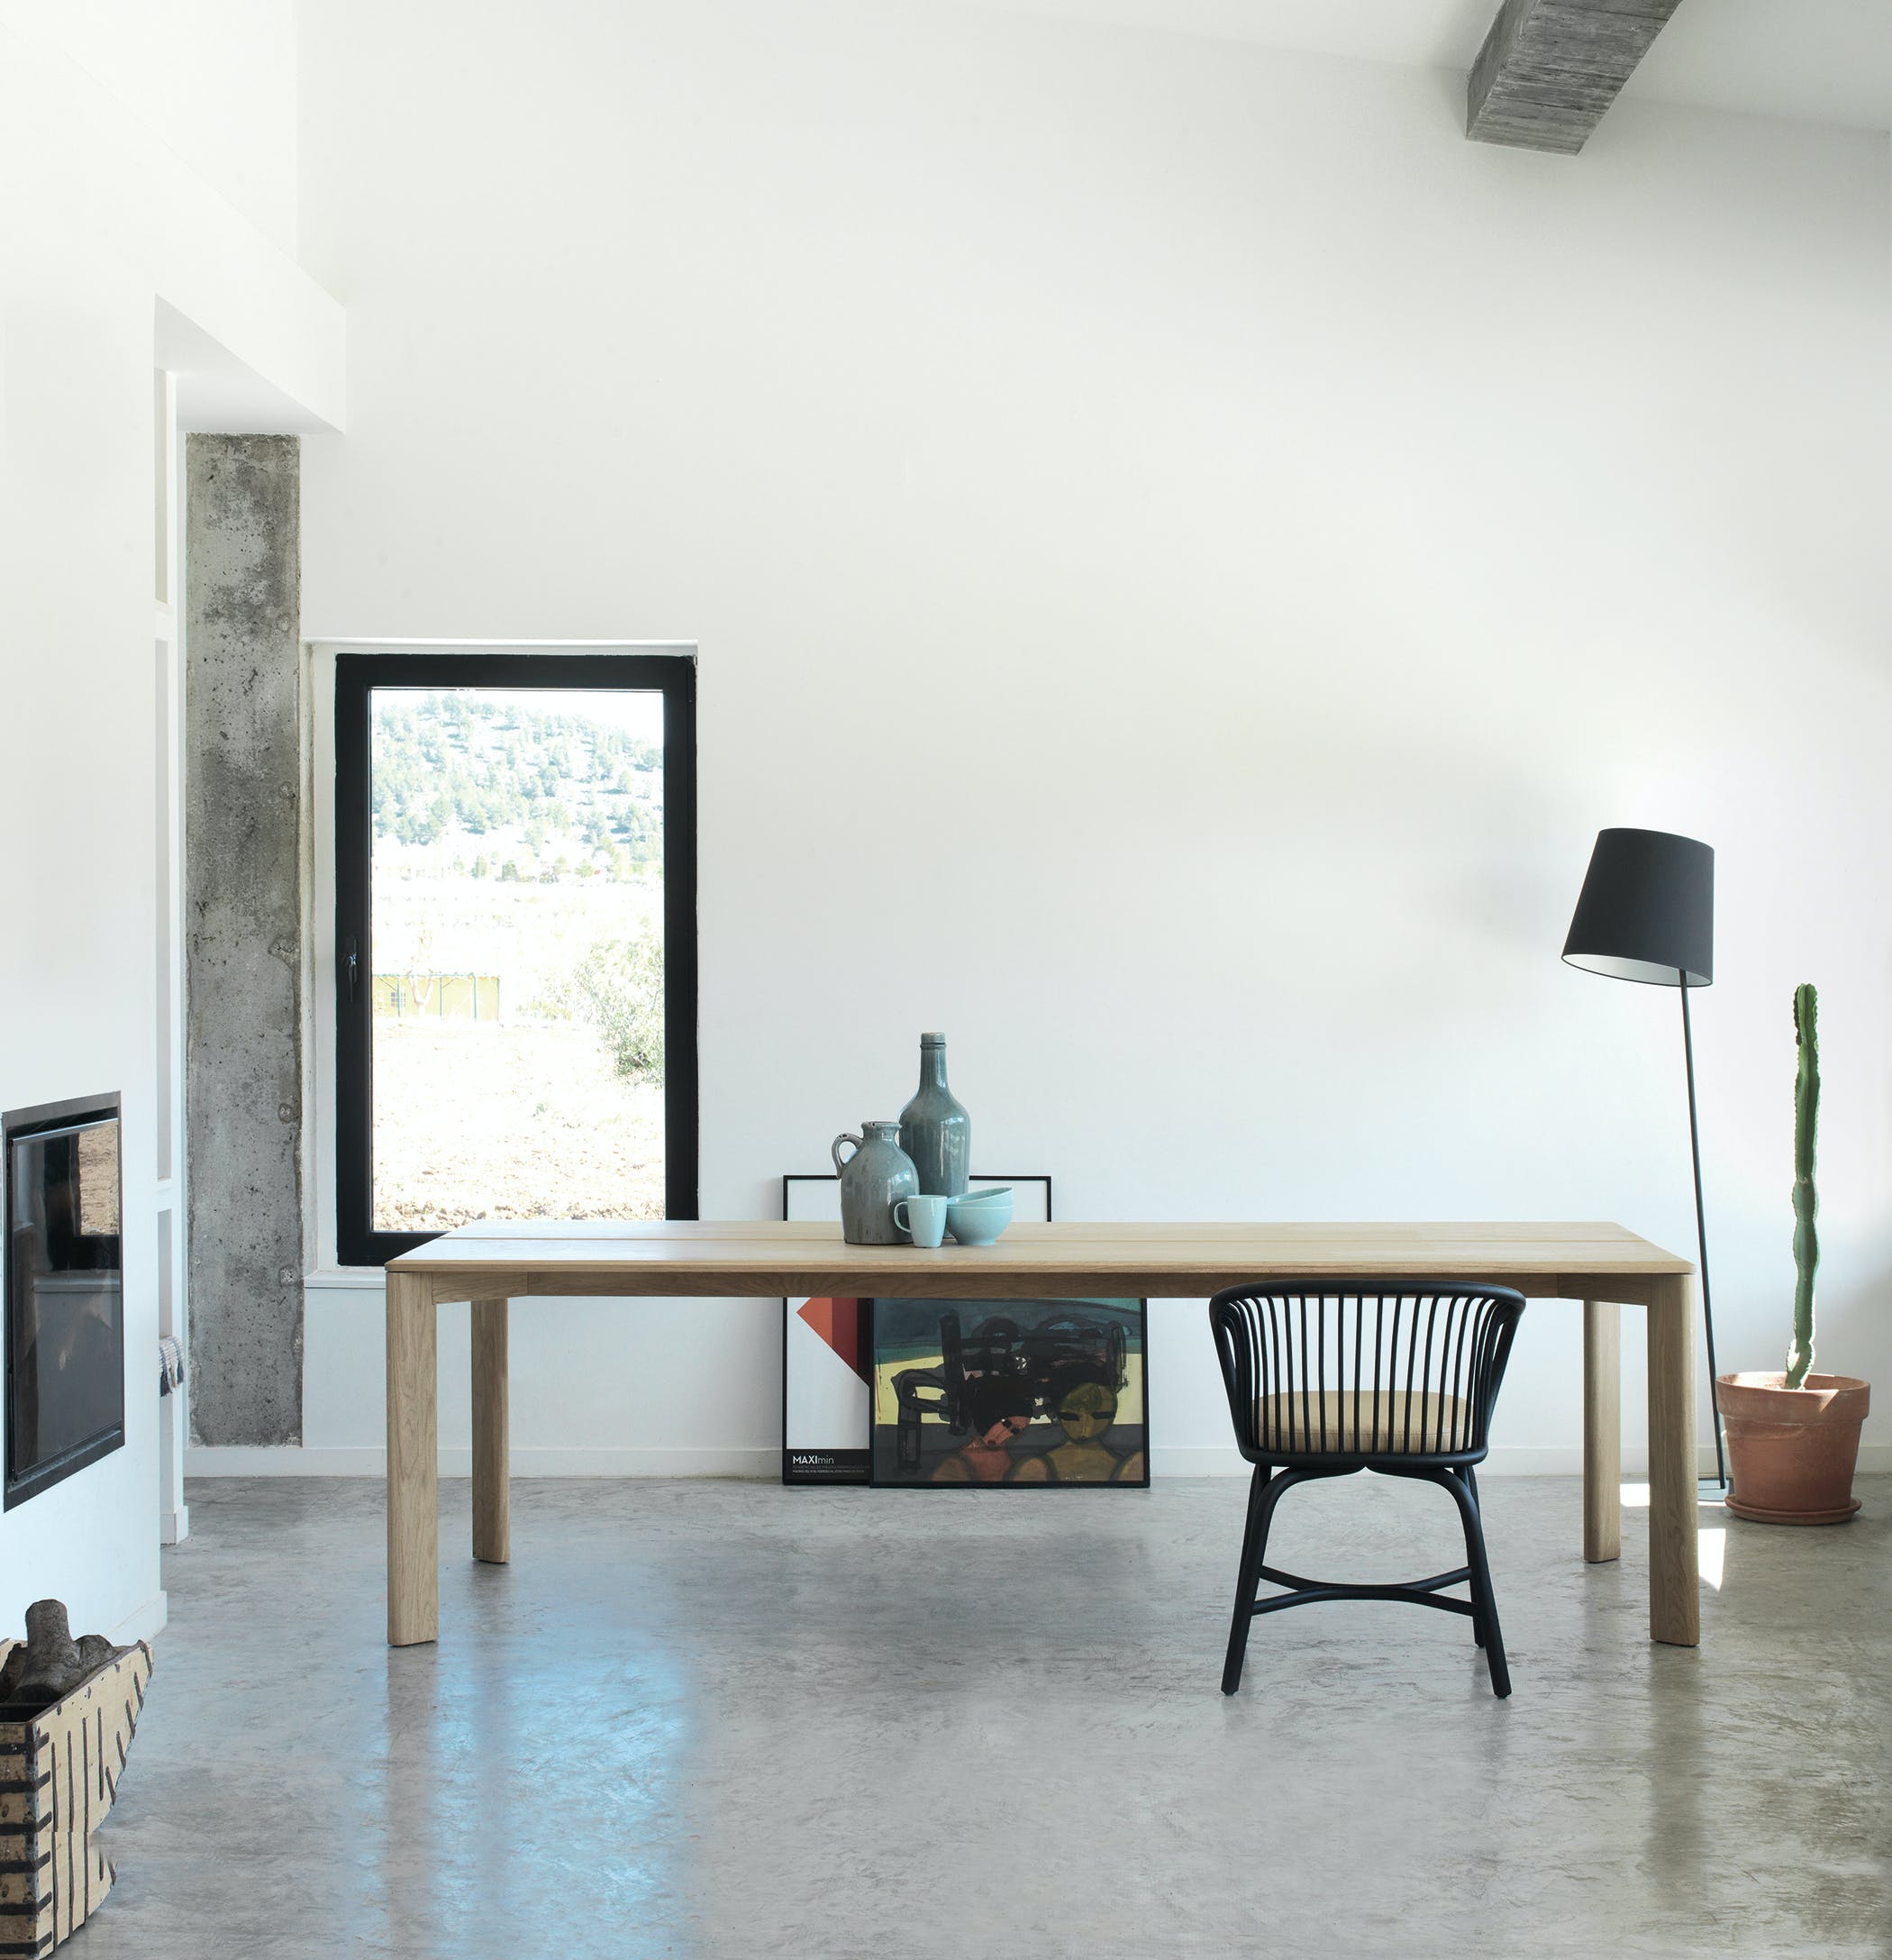 If there is something that defines the Kotai table collection, it is precisely its soundness, as its own Japanese name denotes. The tables come in different sizes and shapes, rectangular, round and square, all of them made of solid wood. But there is yet another feature that they share and that constitutes to their hallmark: a beautiful bevel which highlights the unique possibilities of this noble material and helps the legs integrate elegantly into the corners of the tabletop.